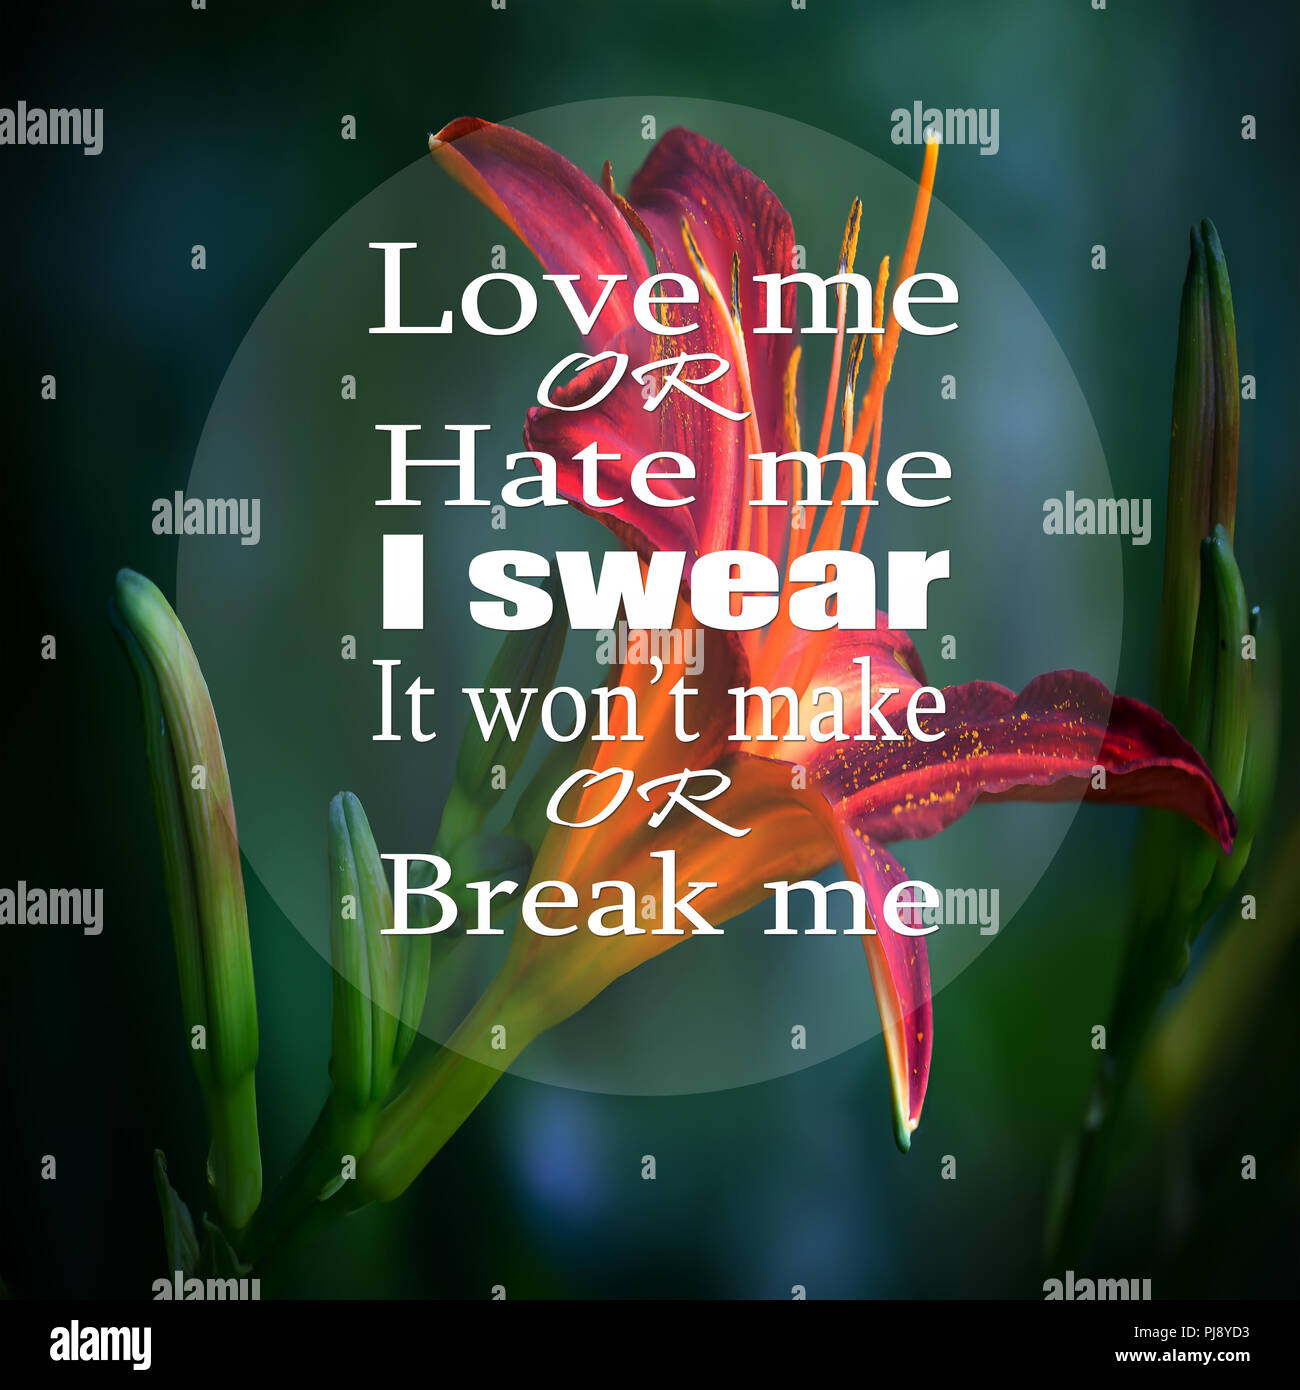 Inspirational Quotes Love Me Or Hate Me I Swear It Wont Make Or